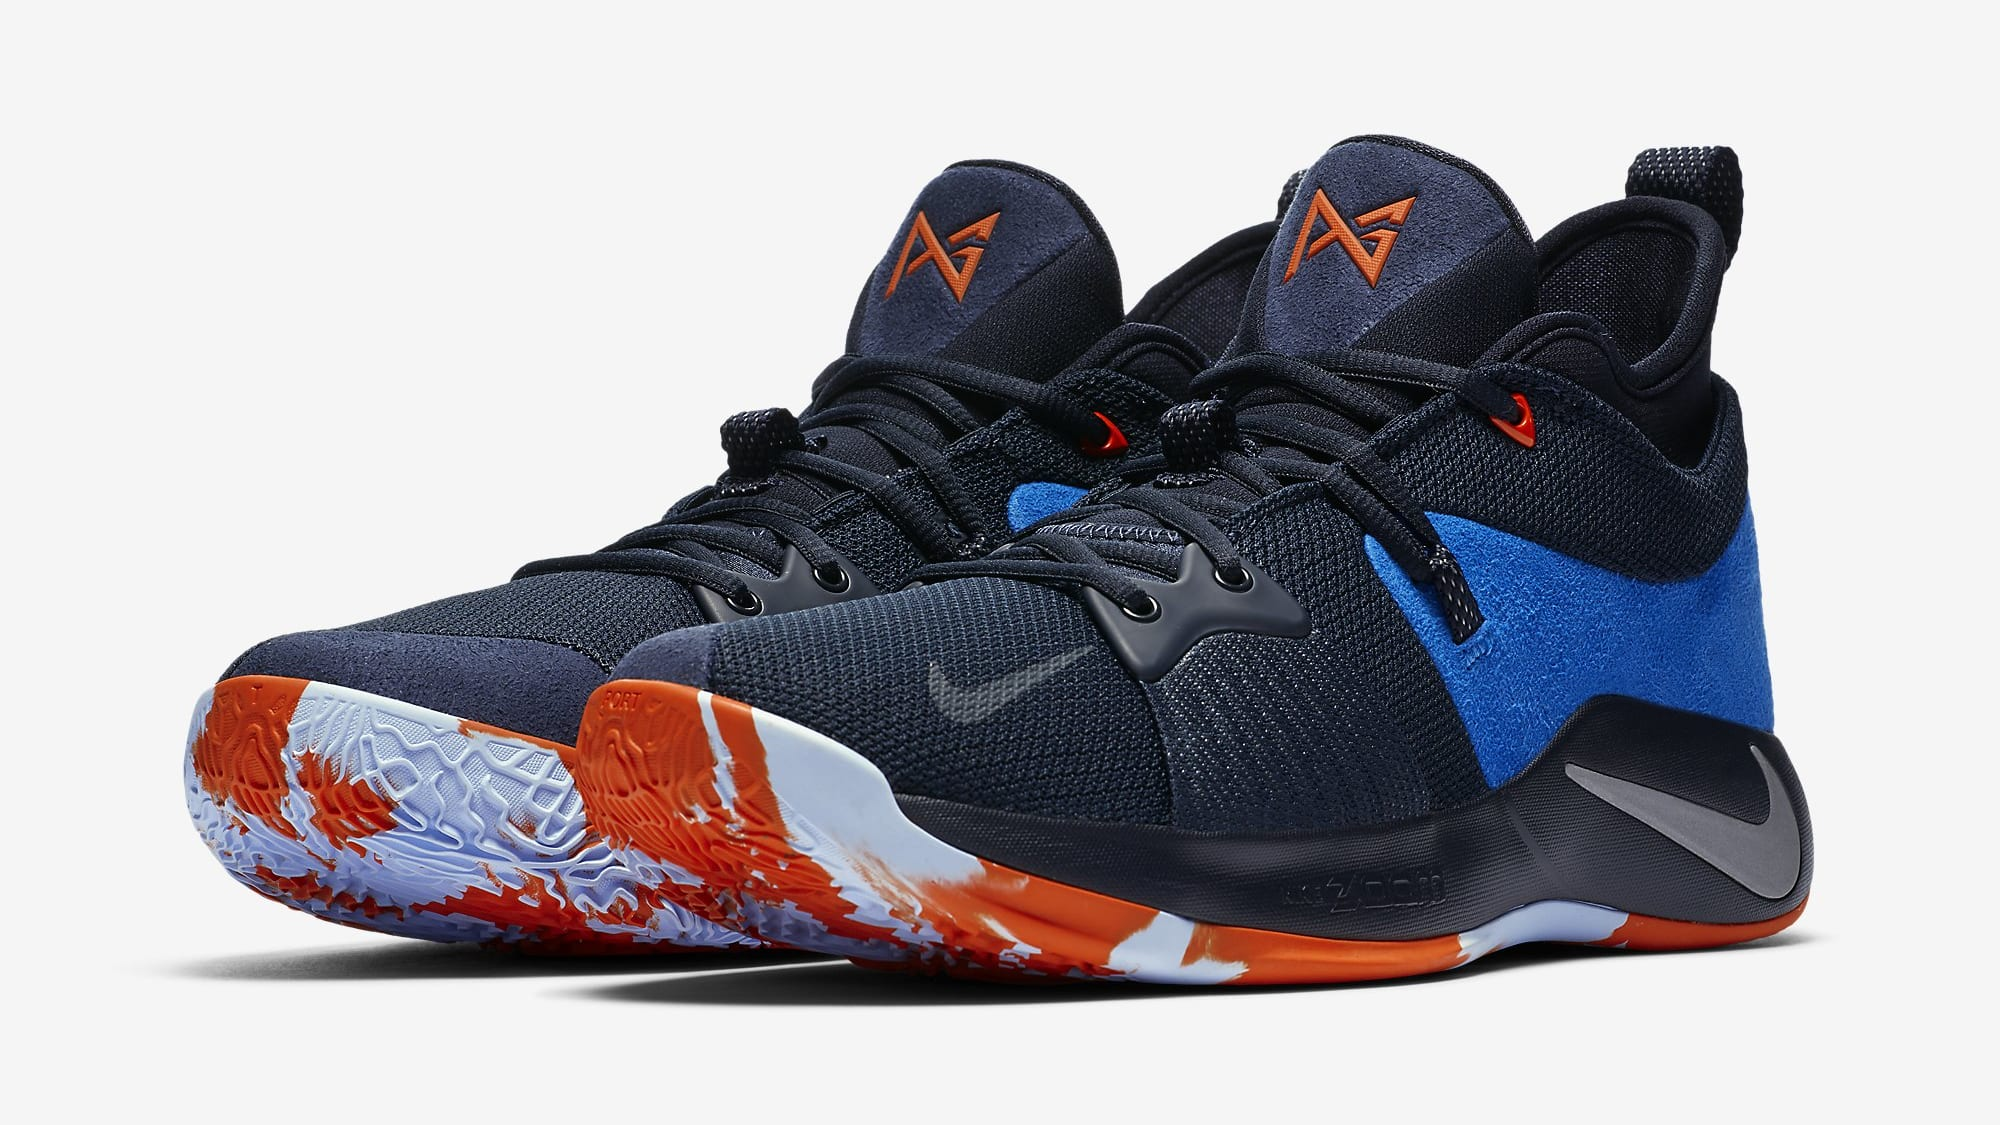 c9e4d36e4d5 ... get nike pg 2. image via nike. paul georges first signature shoe 09db3  6a594